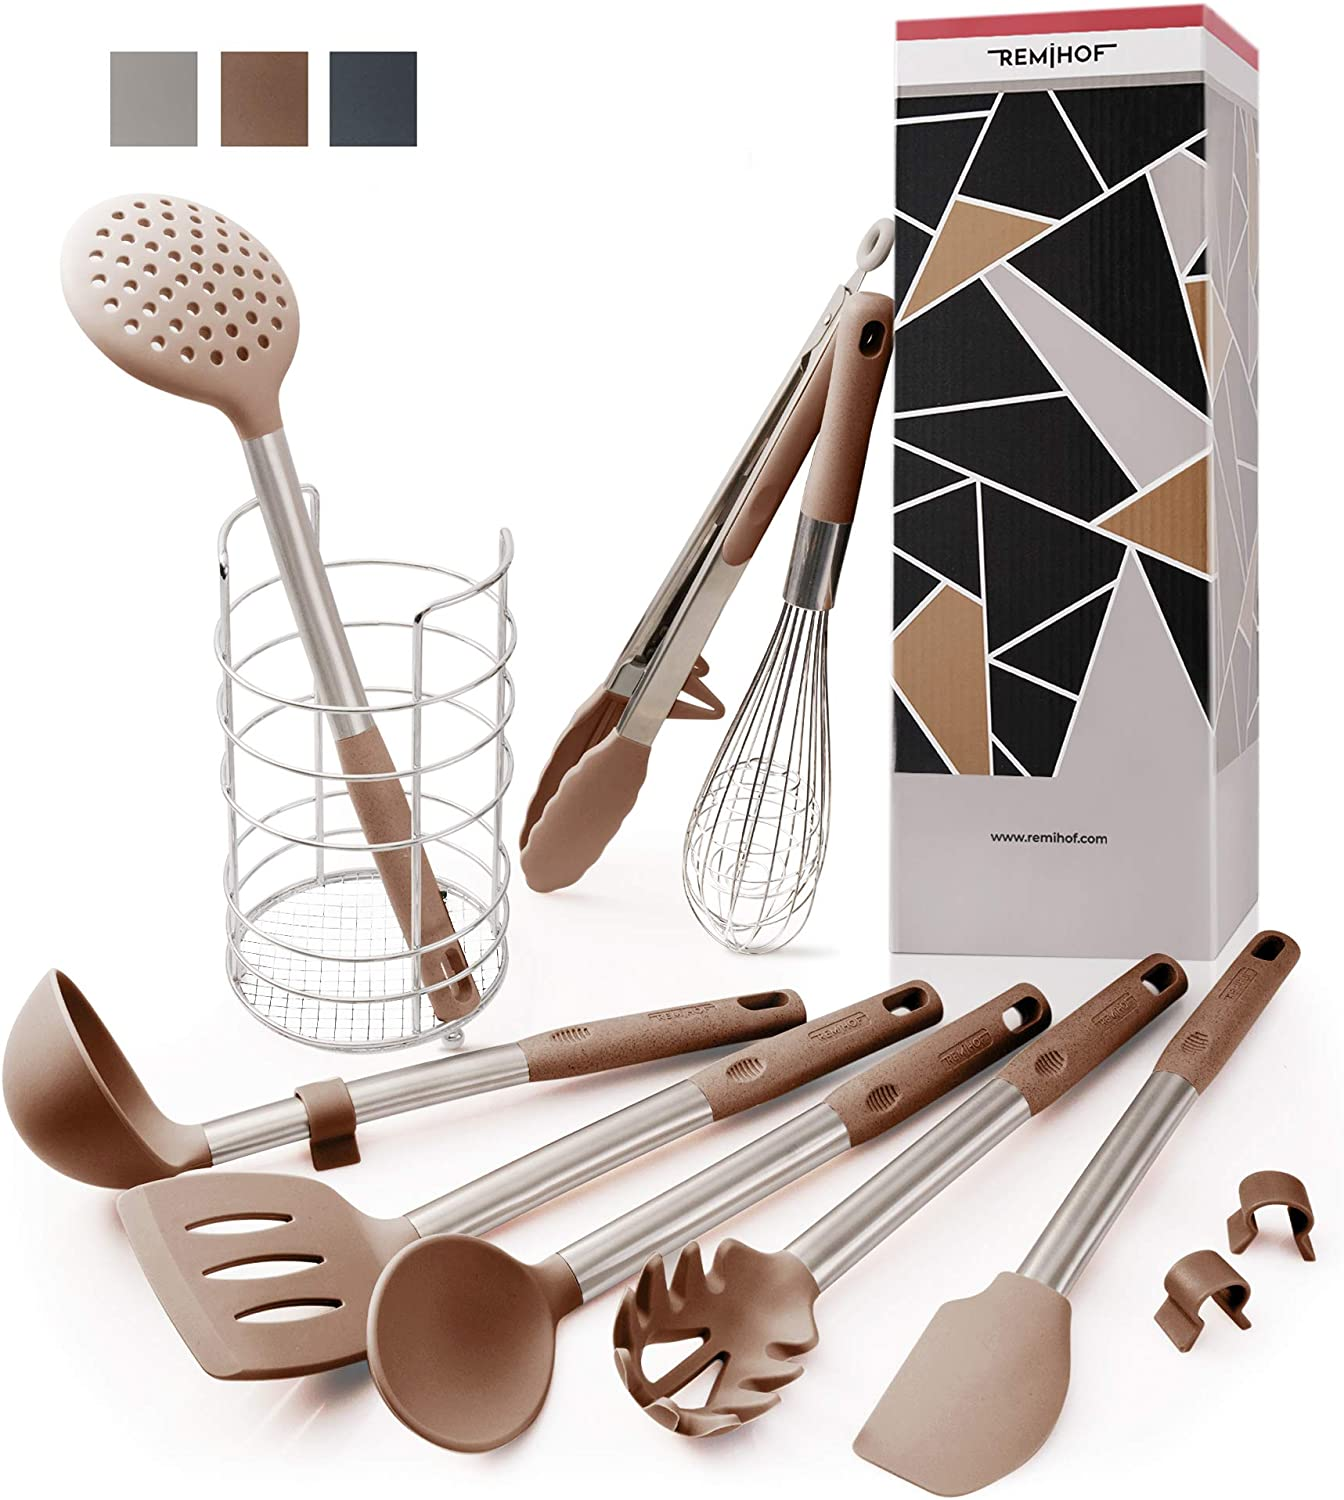 REMIHOF Silicone Kitchen Utensil 9-Piece Set of Premium Stainless Steel and Nonstick Silicon - Spatula Turner Ladle Pasta Server Whisk Tongs with Holder